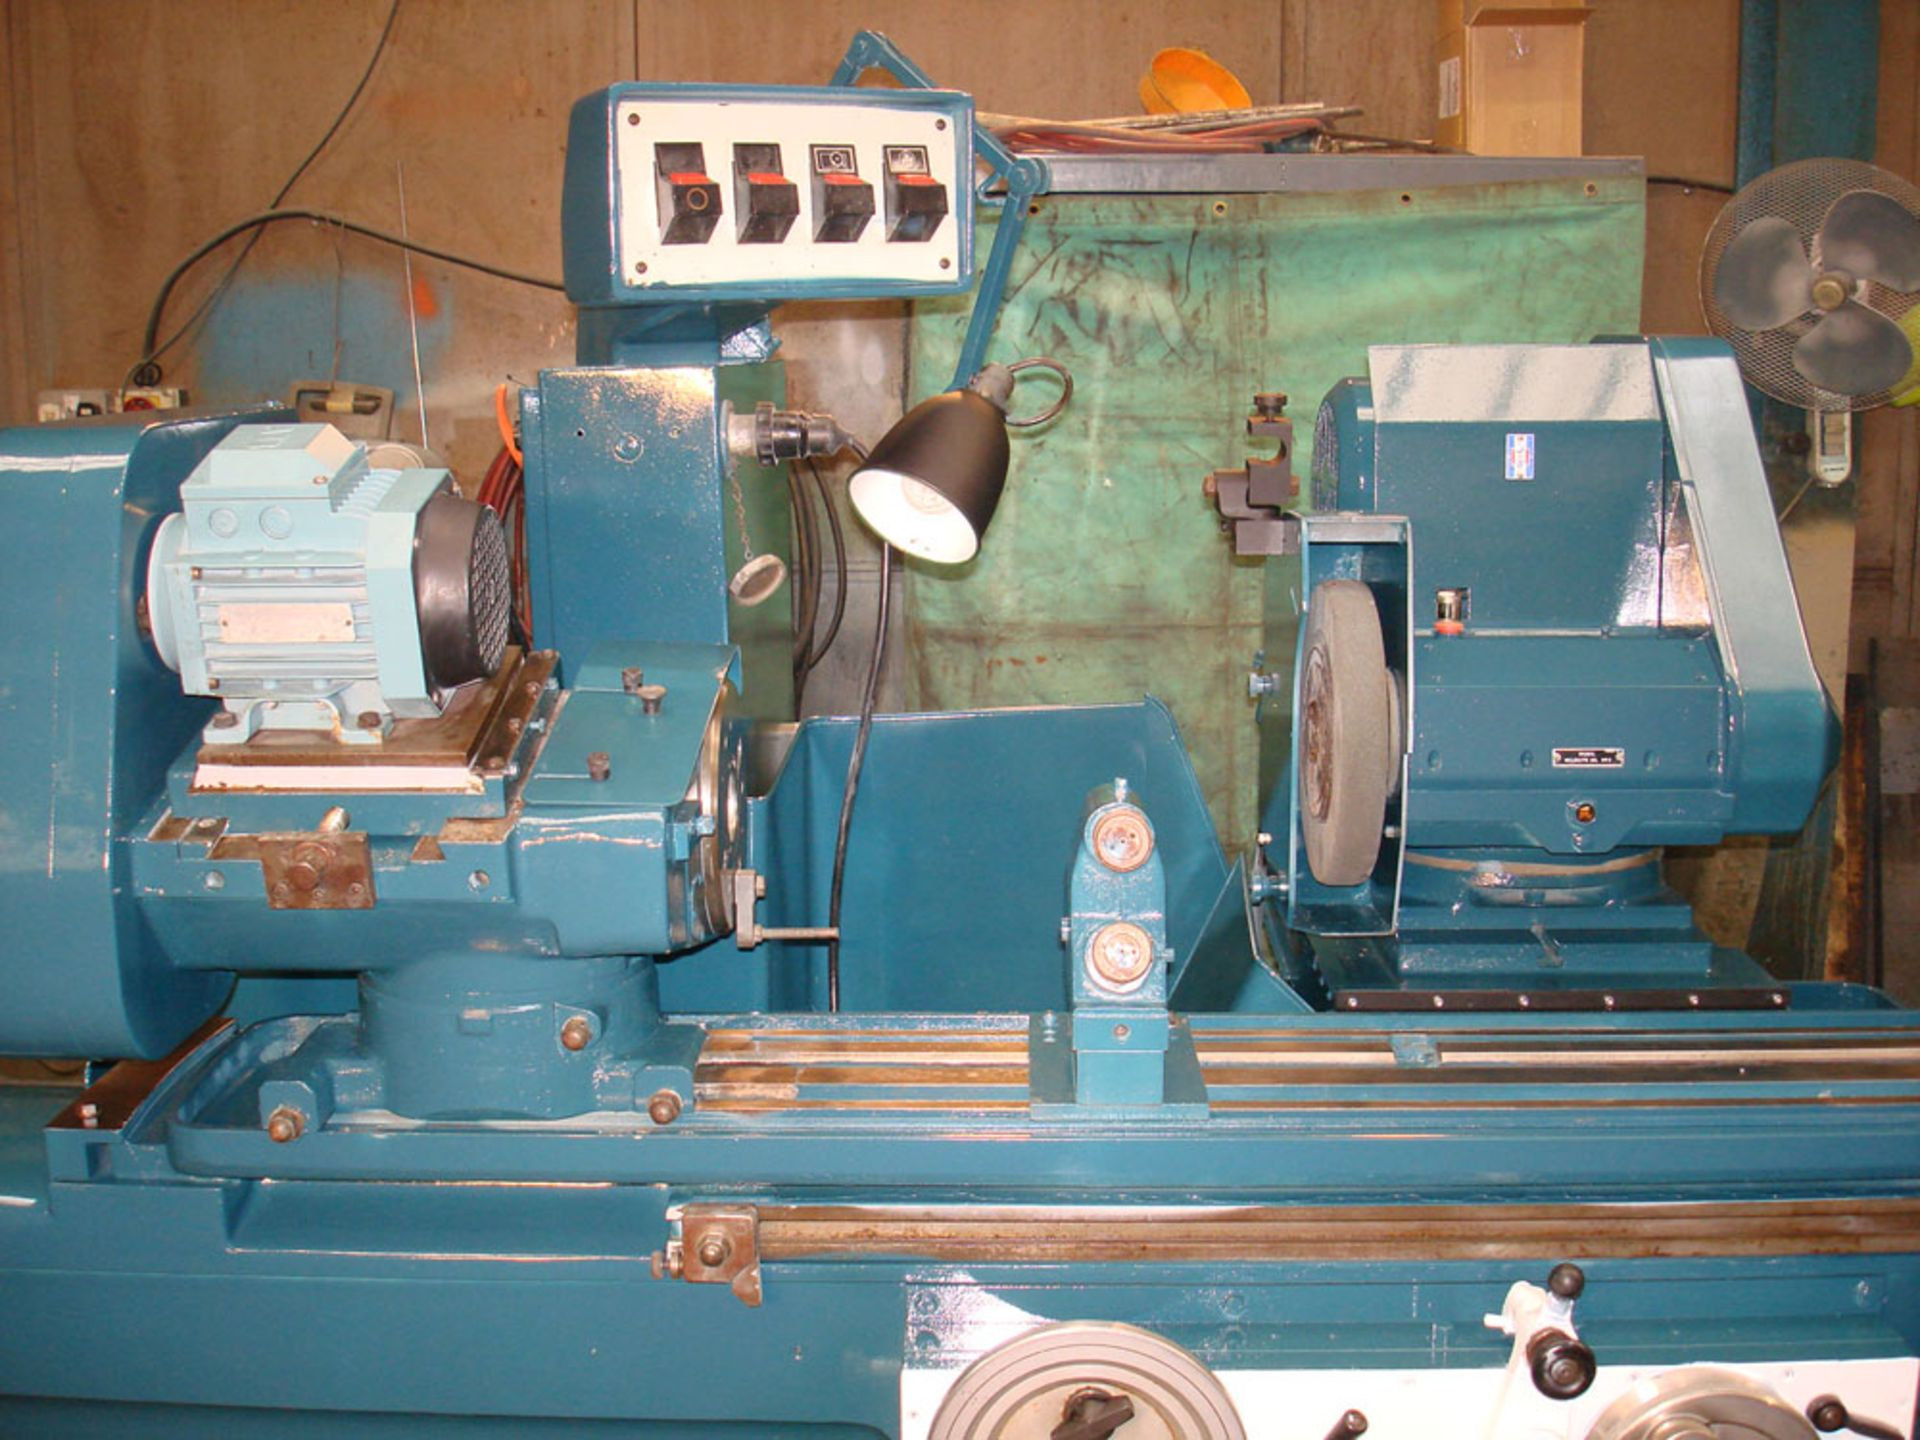 Jones & Shipman 1307 Universal Cylindrical Grinder. Swing 356 x 1016mm Between Centres. - Image 2 of 7